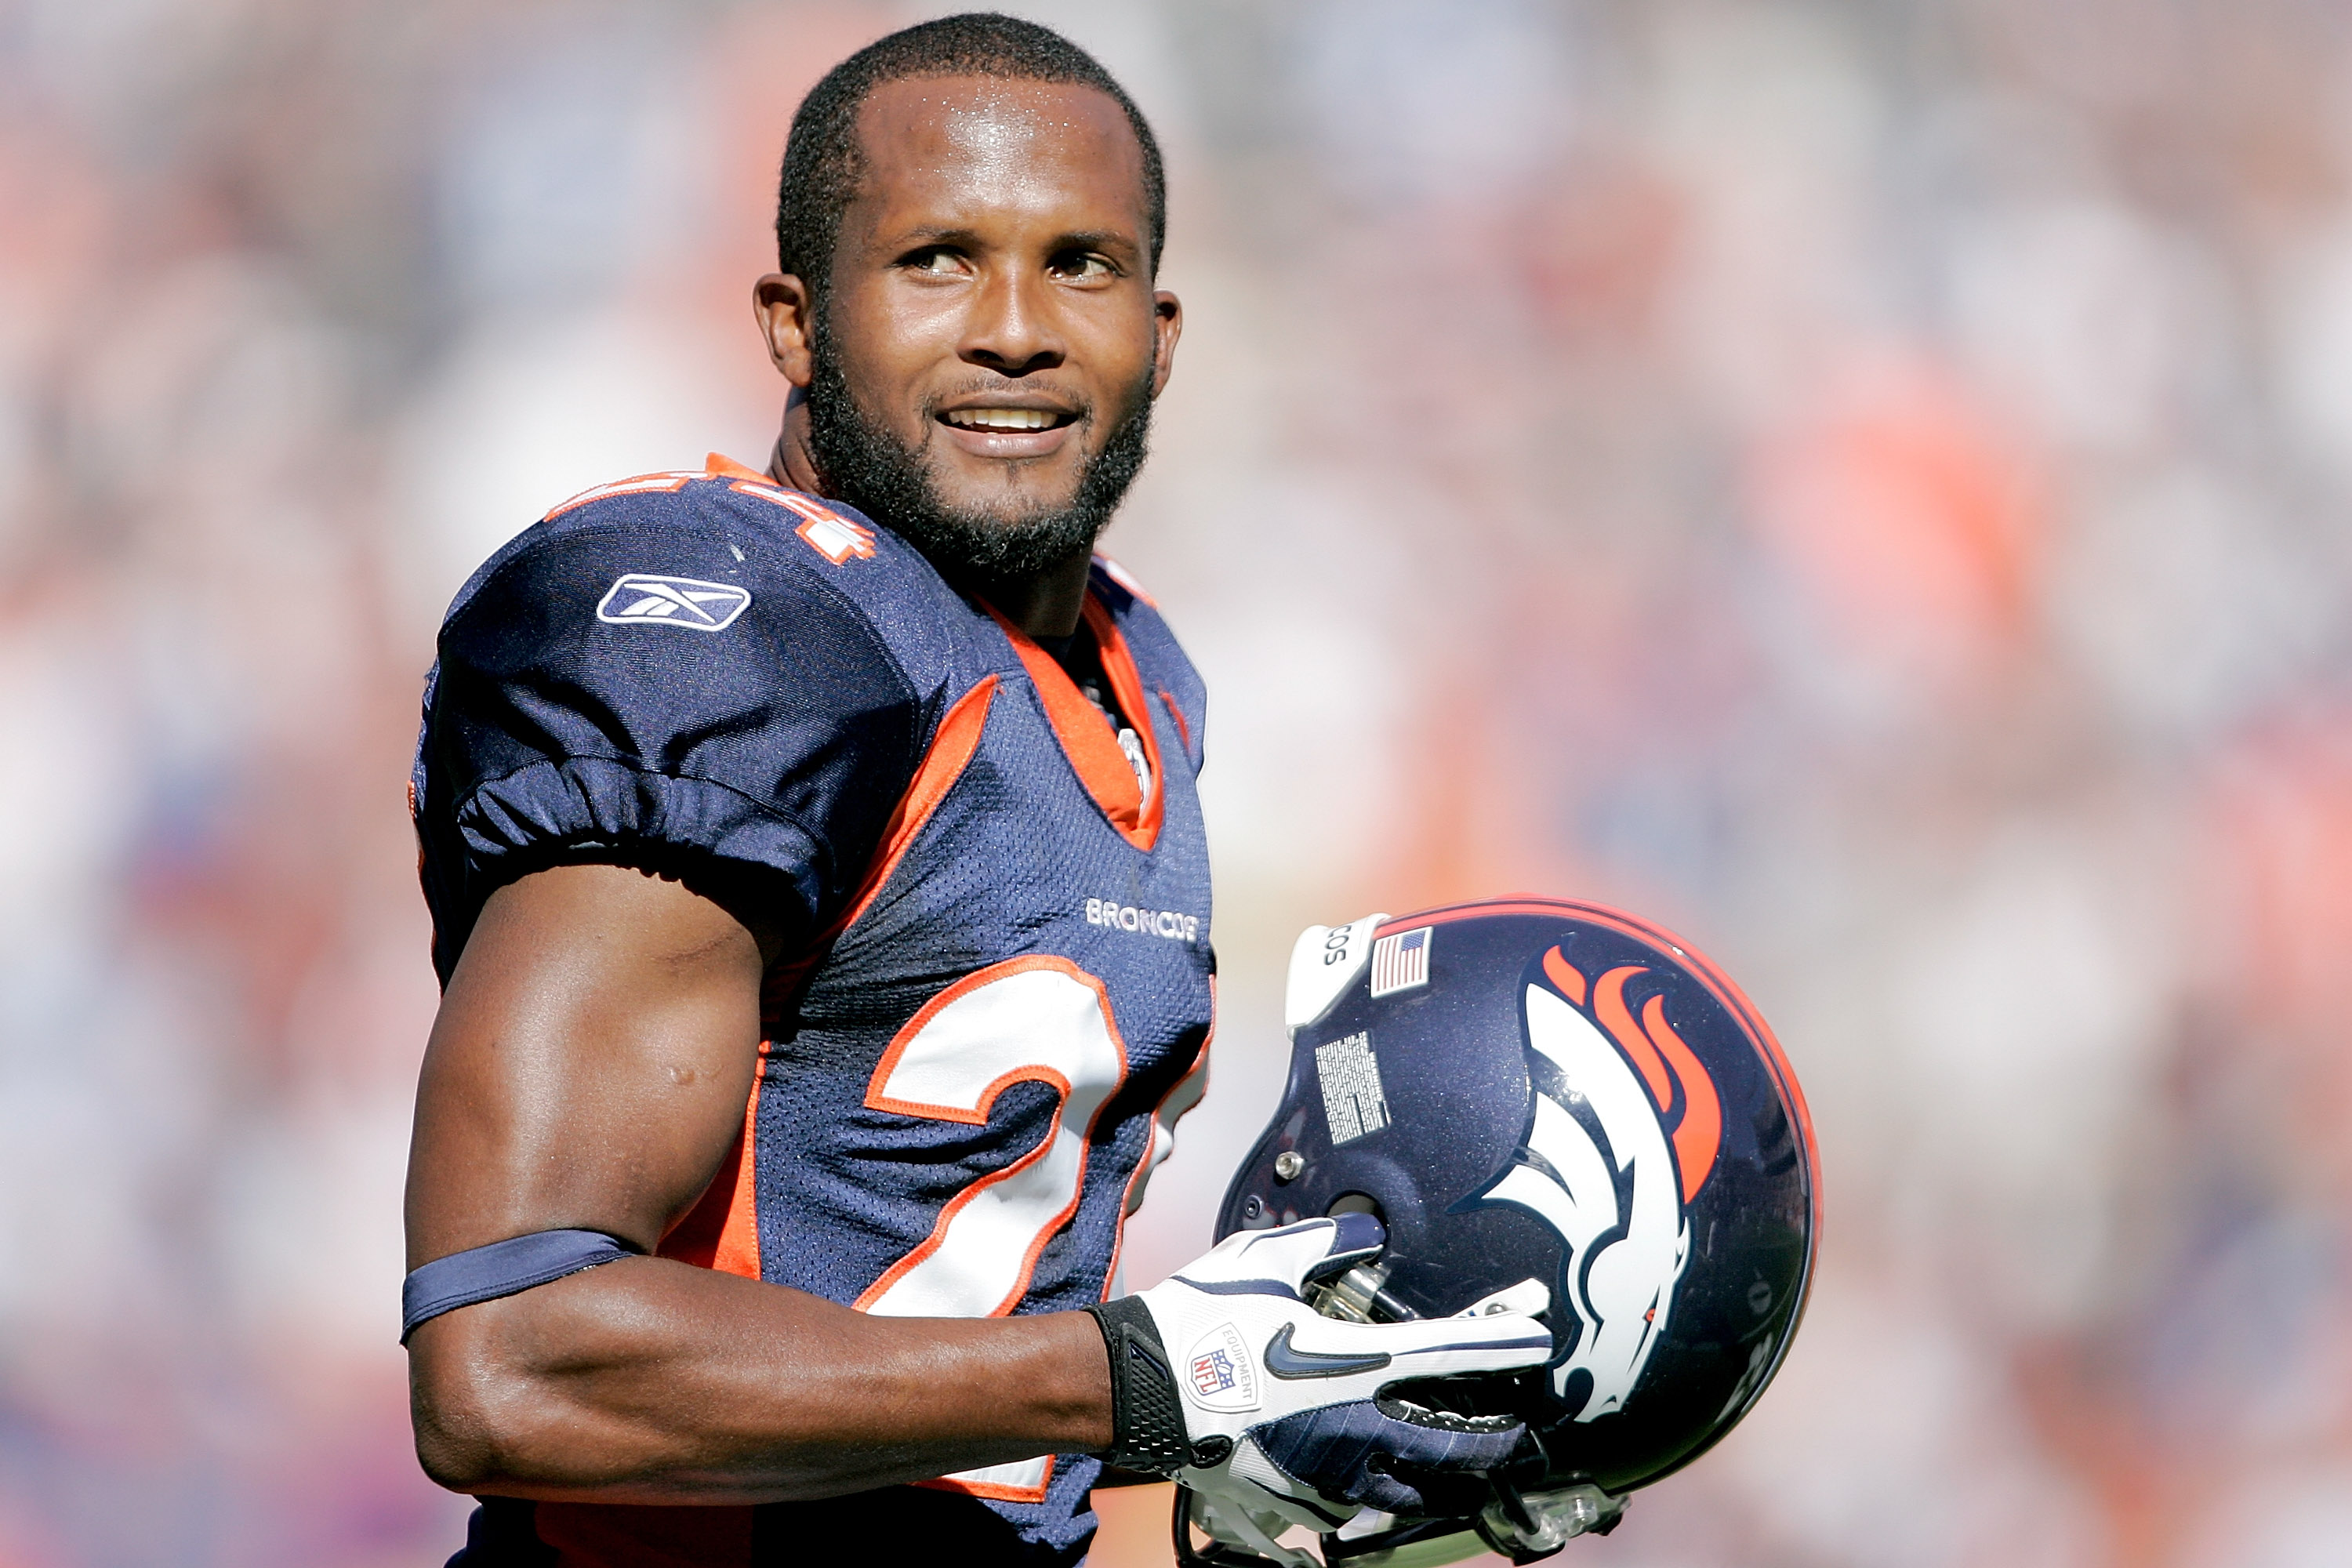 DENVER - SEPTEMBER 26:  Cornerback Champ Bailey #24 of the Denver Broncos walks back onto the field against the Indianapolis Colts during NFL action at INVESCO Field at Mile High on September 26, 2010 in Denver, Colorado.  (Photo by Justin Edmonds/Getty I